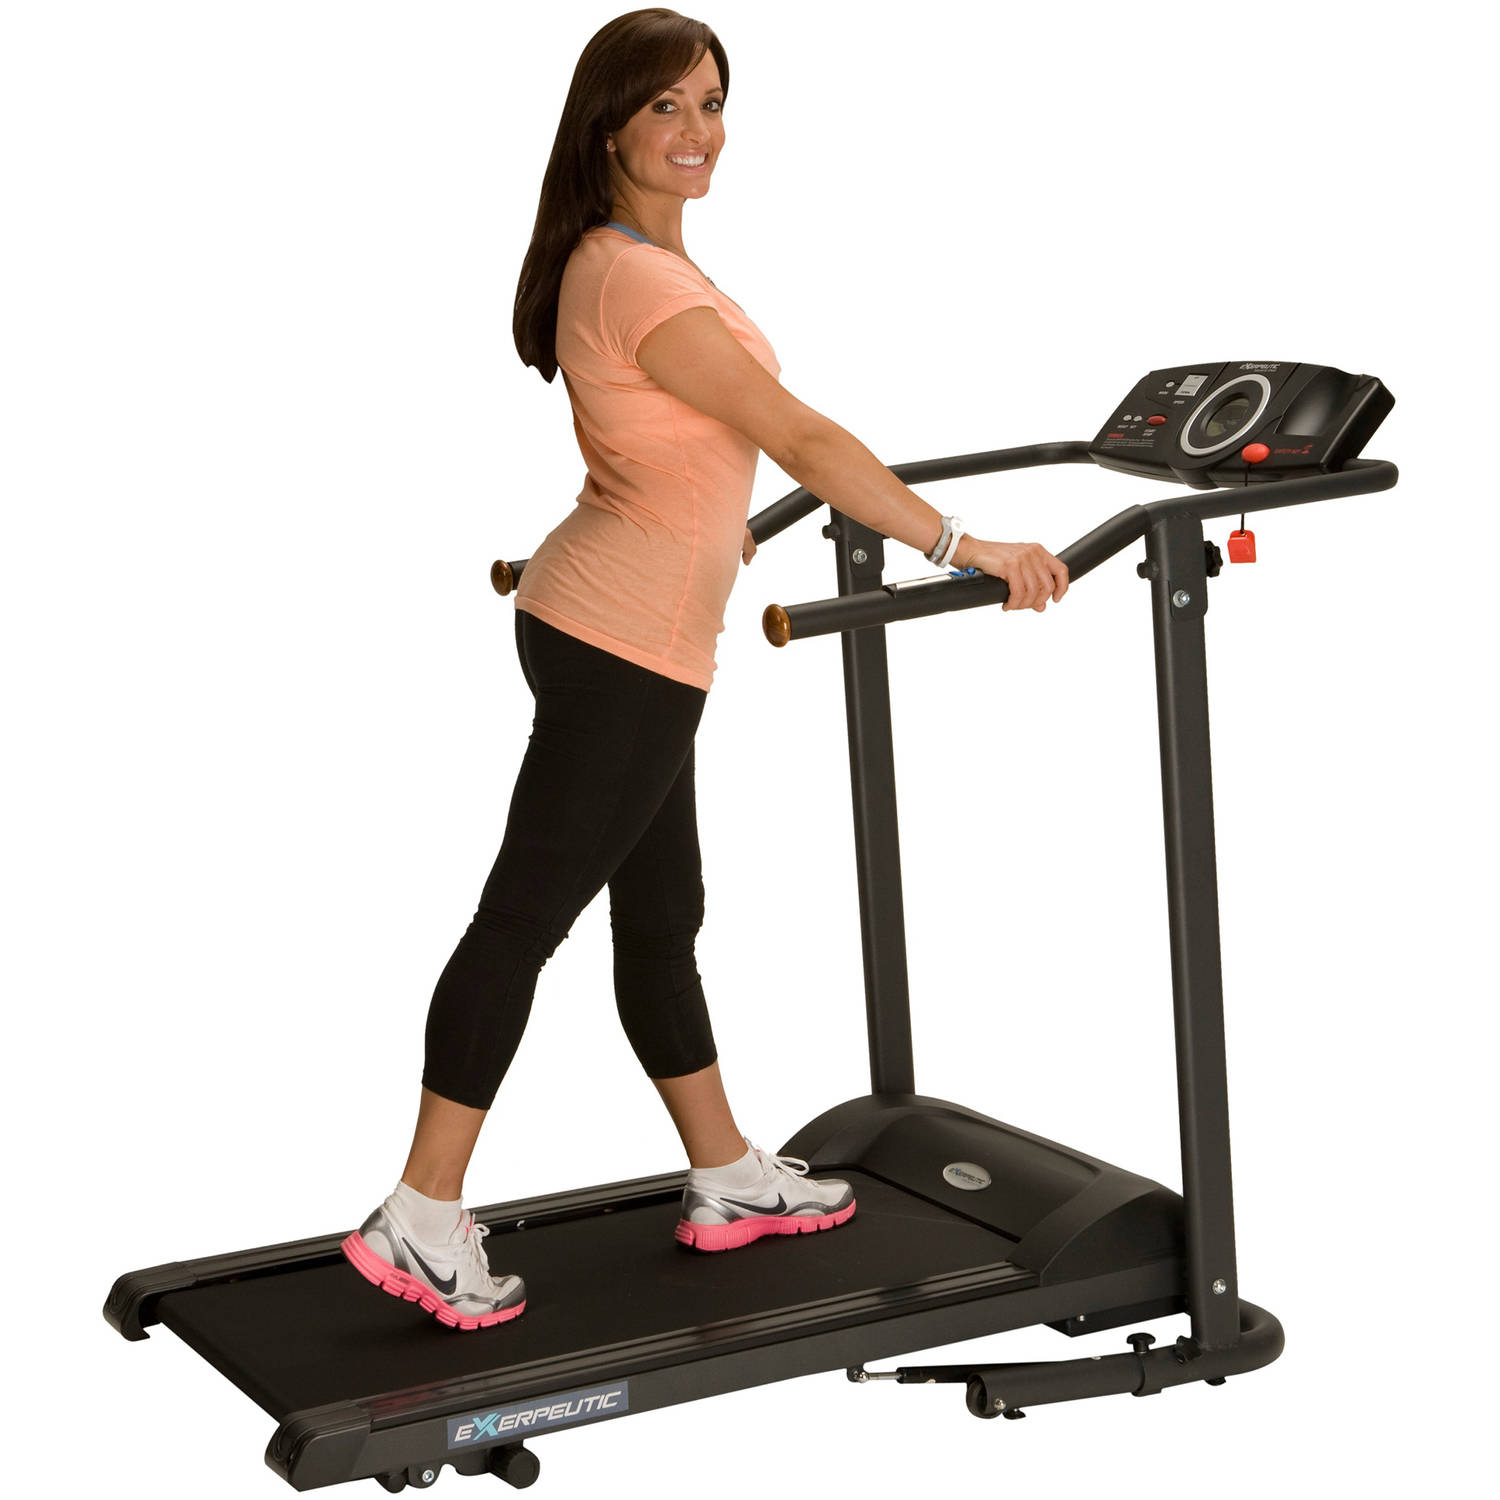 Exerpeutic TF1000 Ultra High 400 LB Weight Capacity Electric Treadmill with Incline & LCD Display